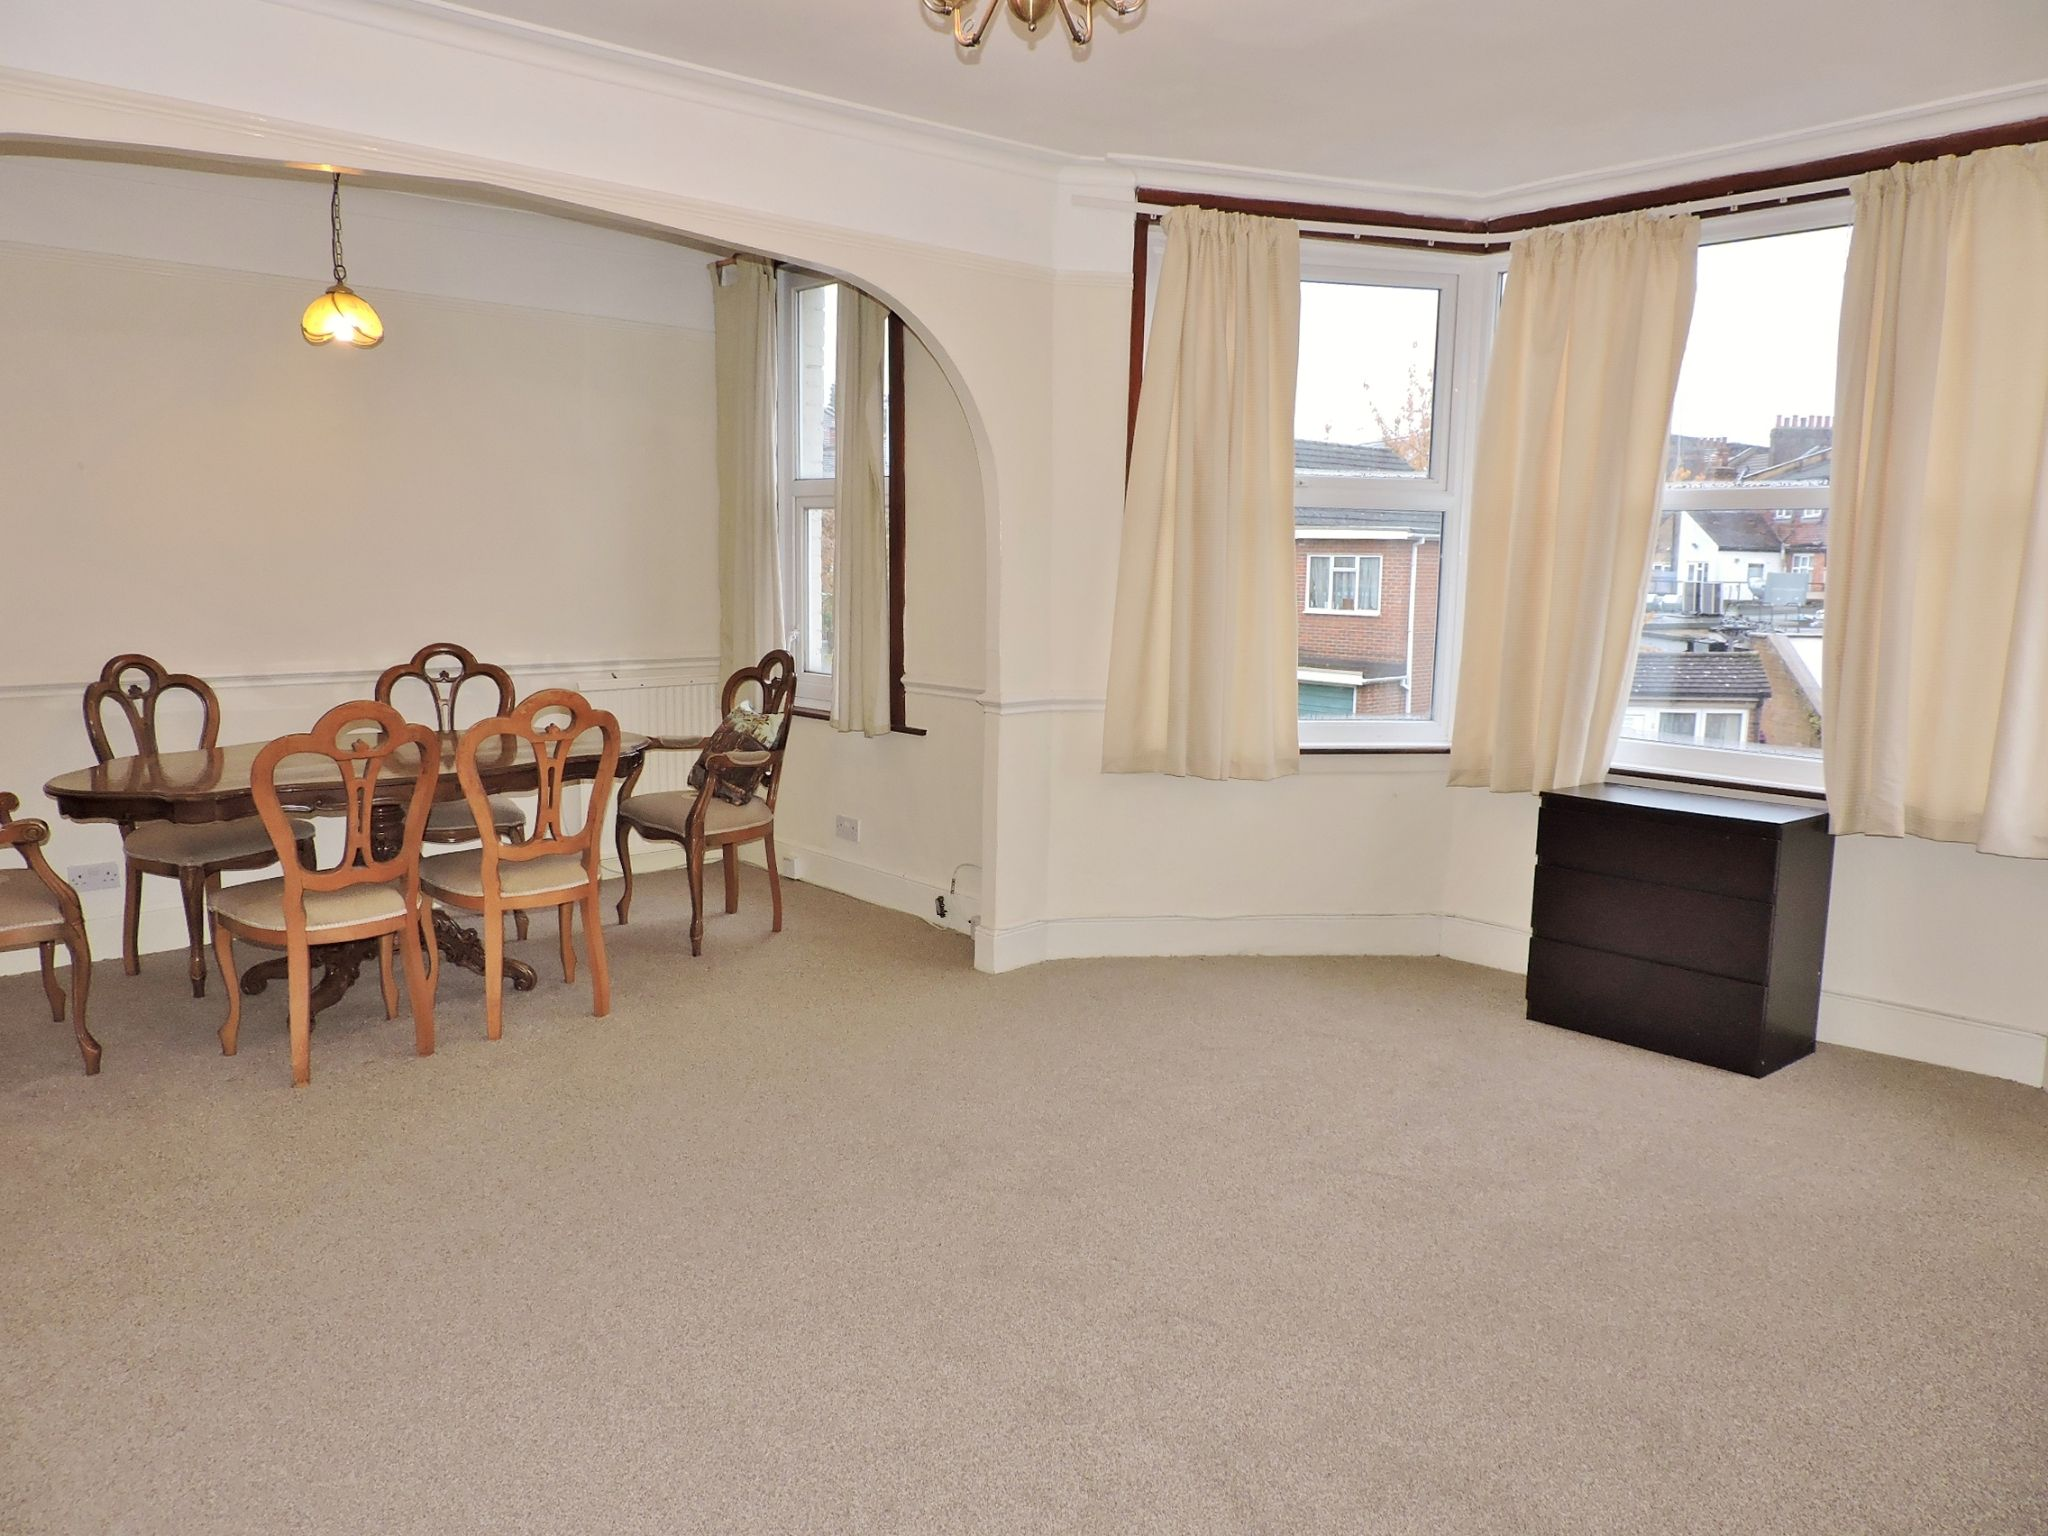 4 bedroom maisonette flat/apartment To Let in New Malden - Property photograph